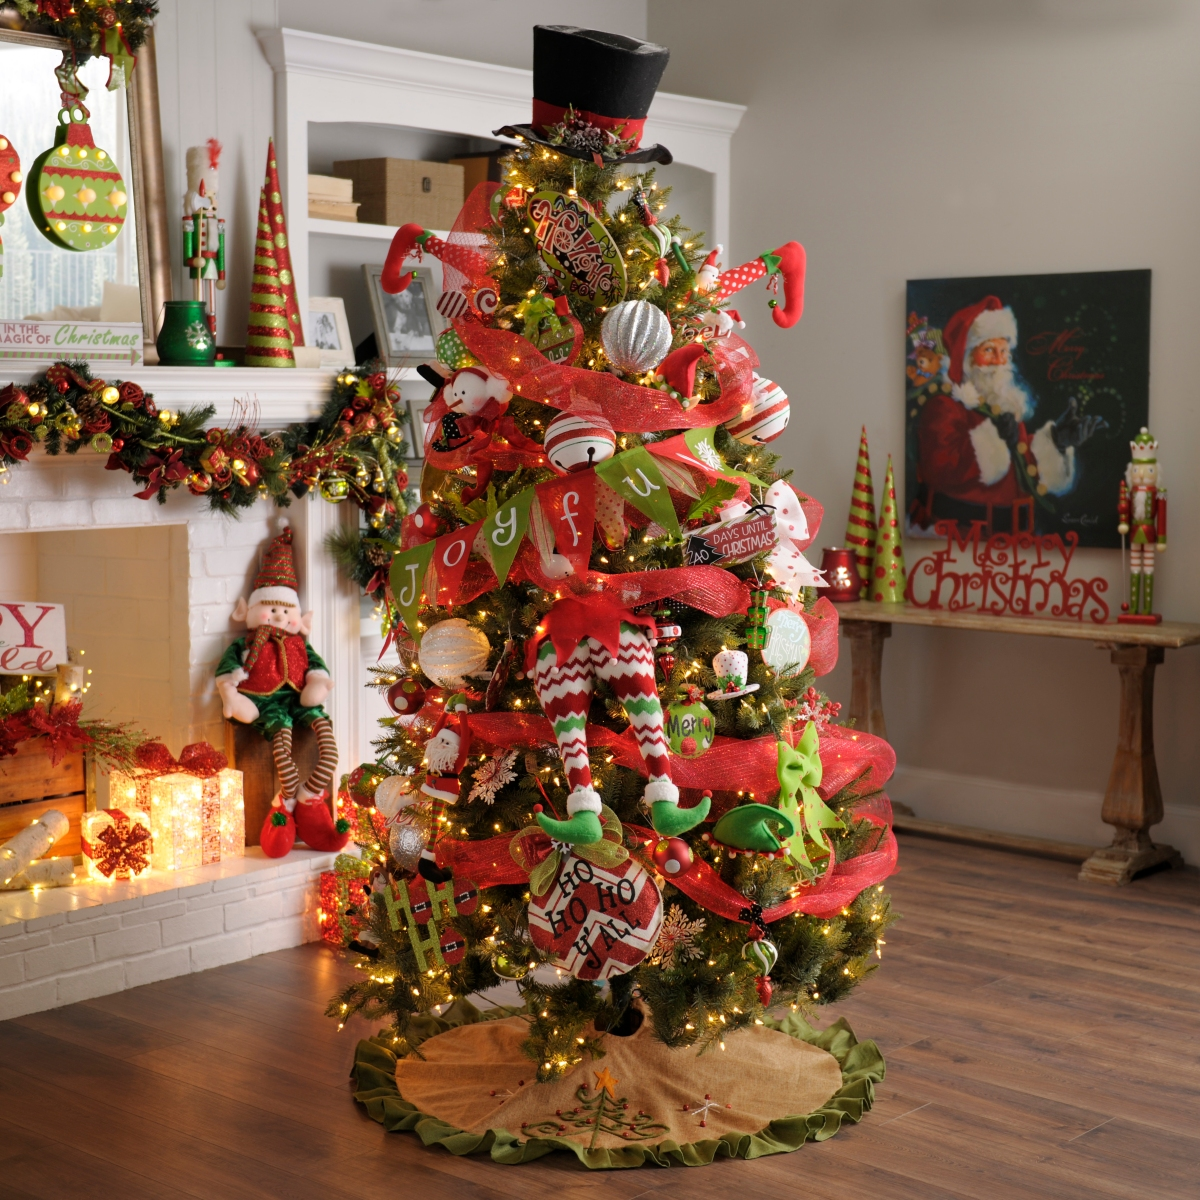 Deck The Halls With Cheery Ornaments, Tree Toppers And